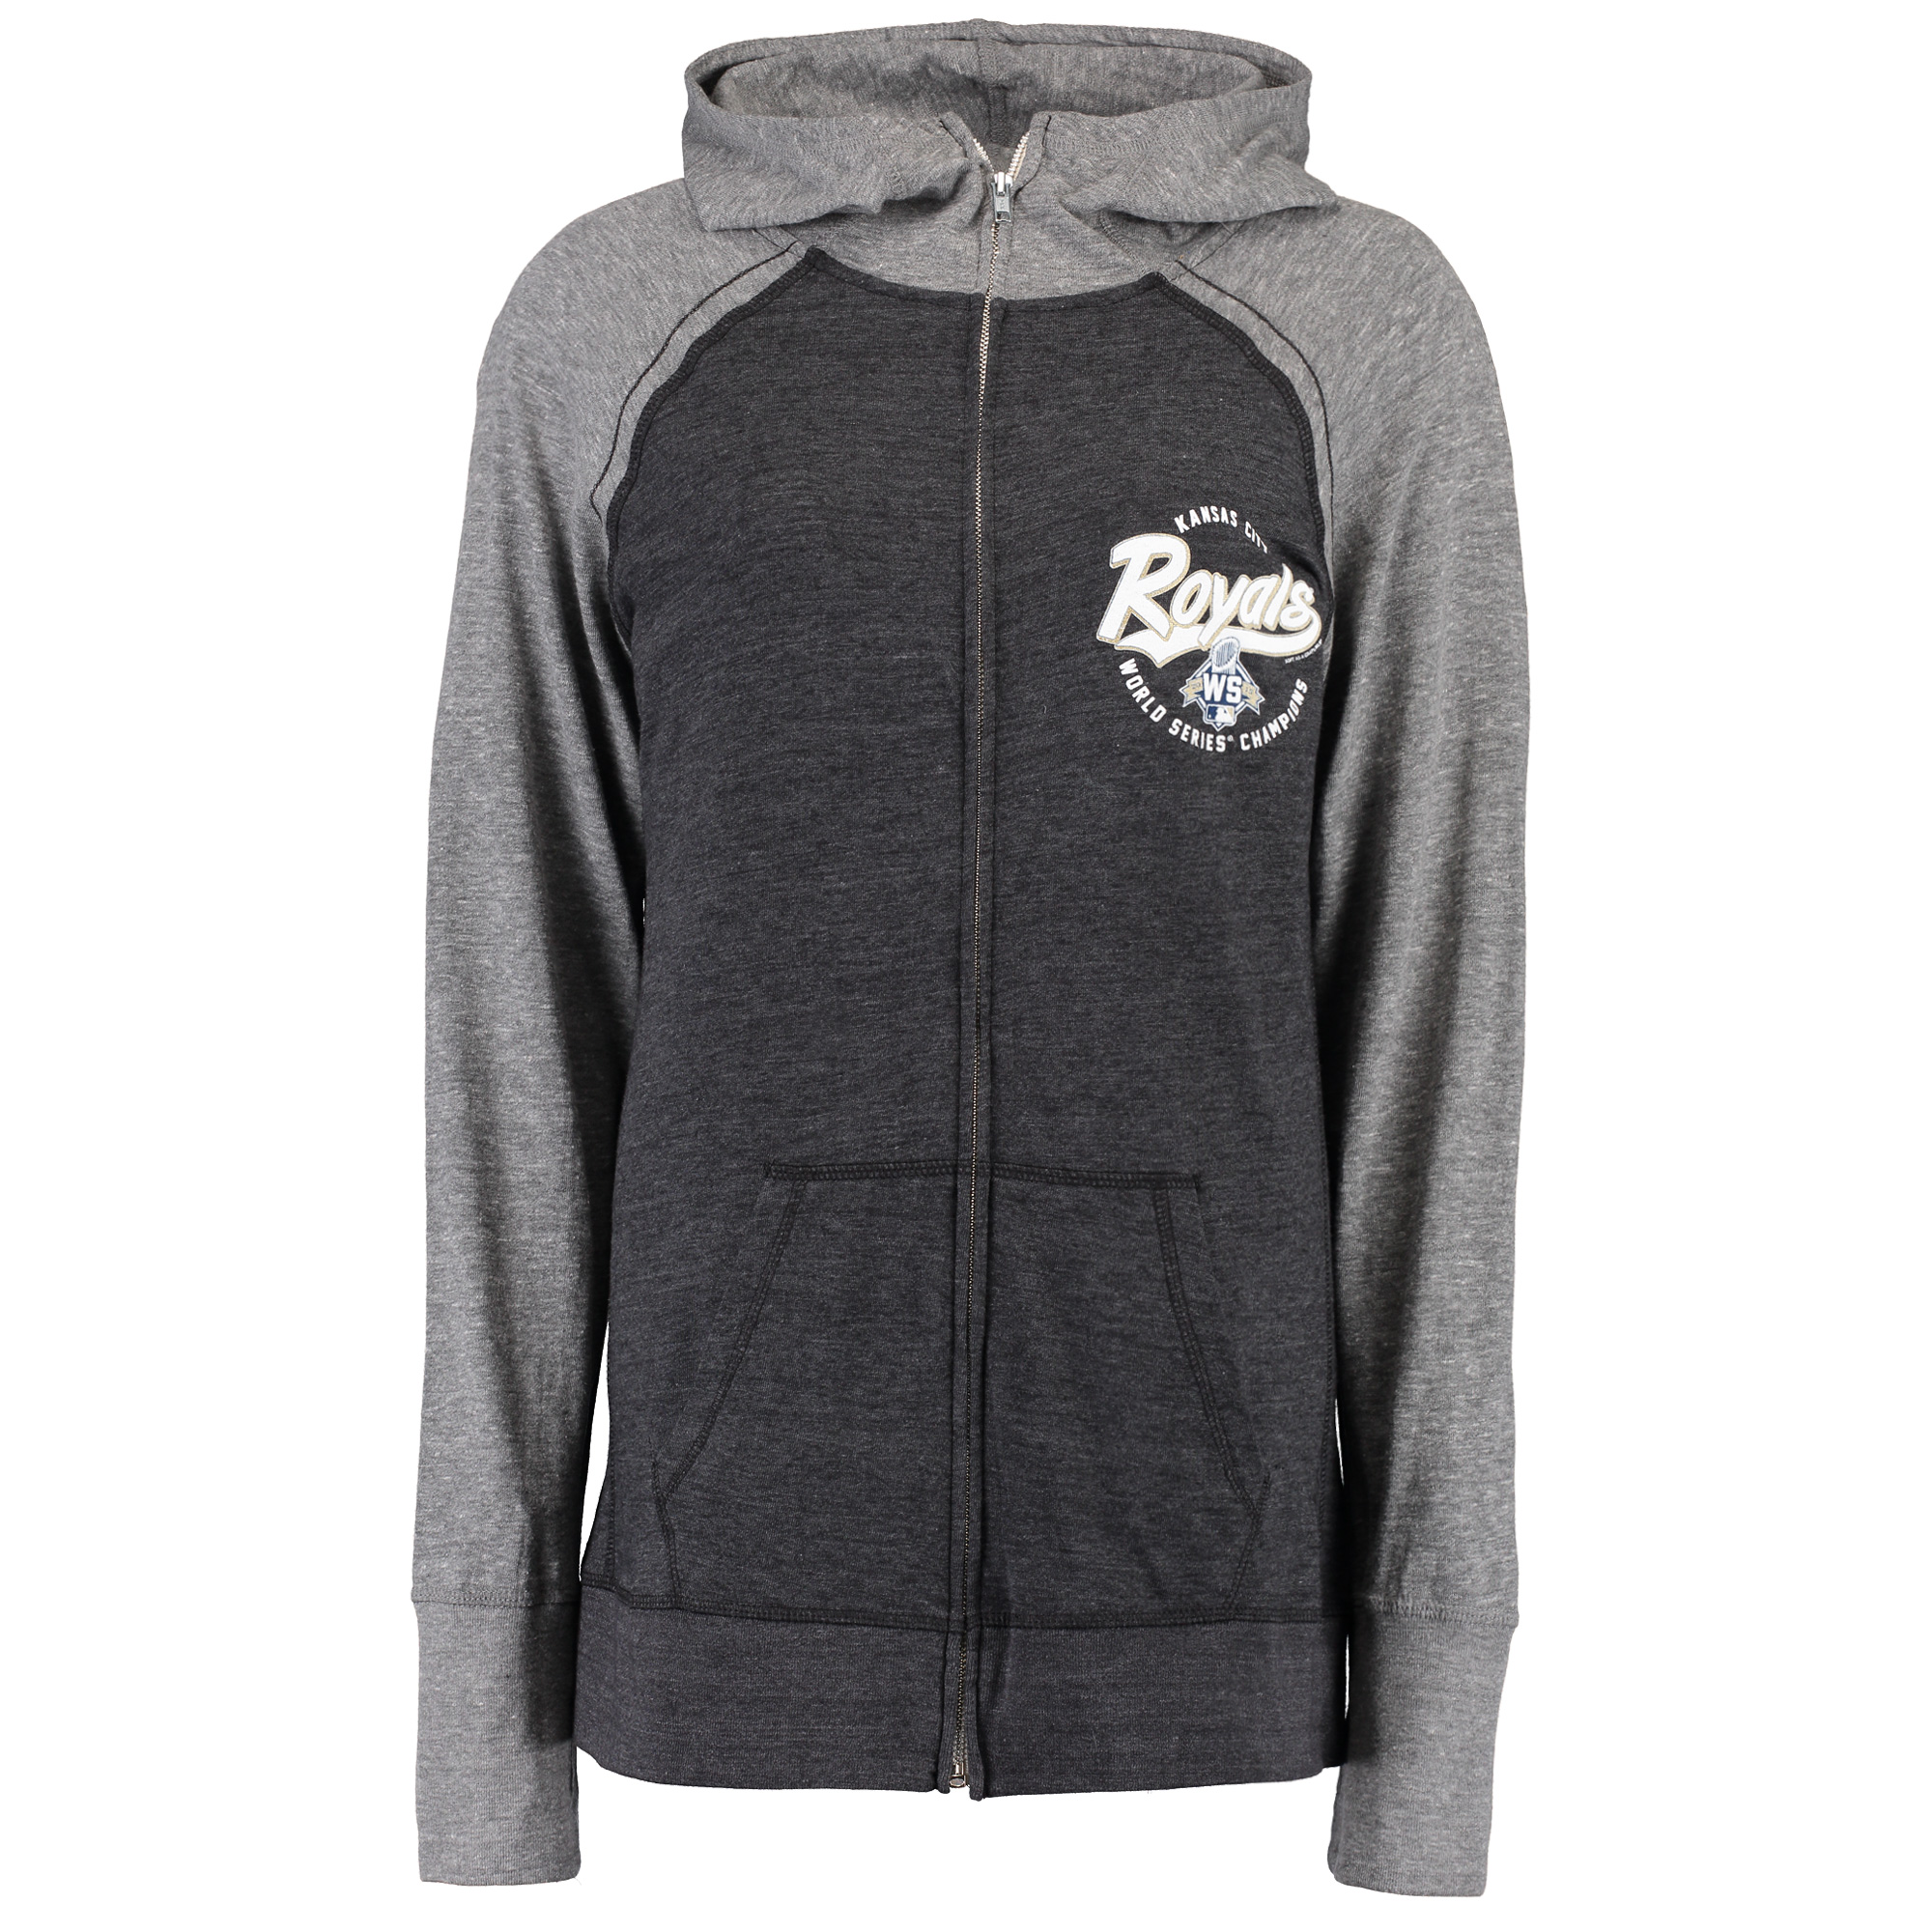 Kansas City Royals Soft as a Grape Women's Plus Size 2015 World Series  Full-Zip Hoodie - Black - Plus 1X